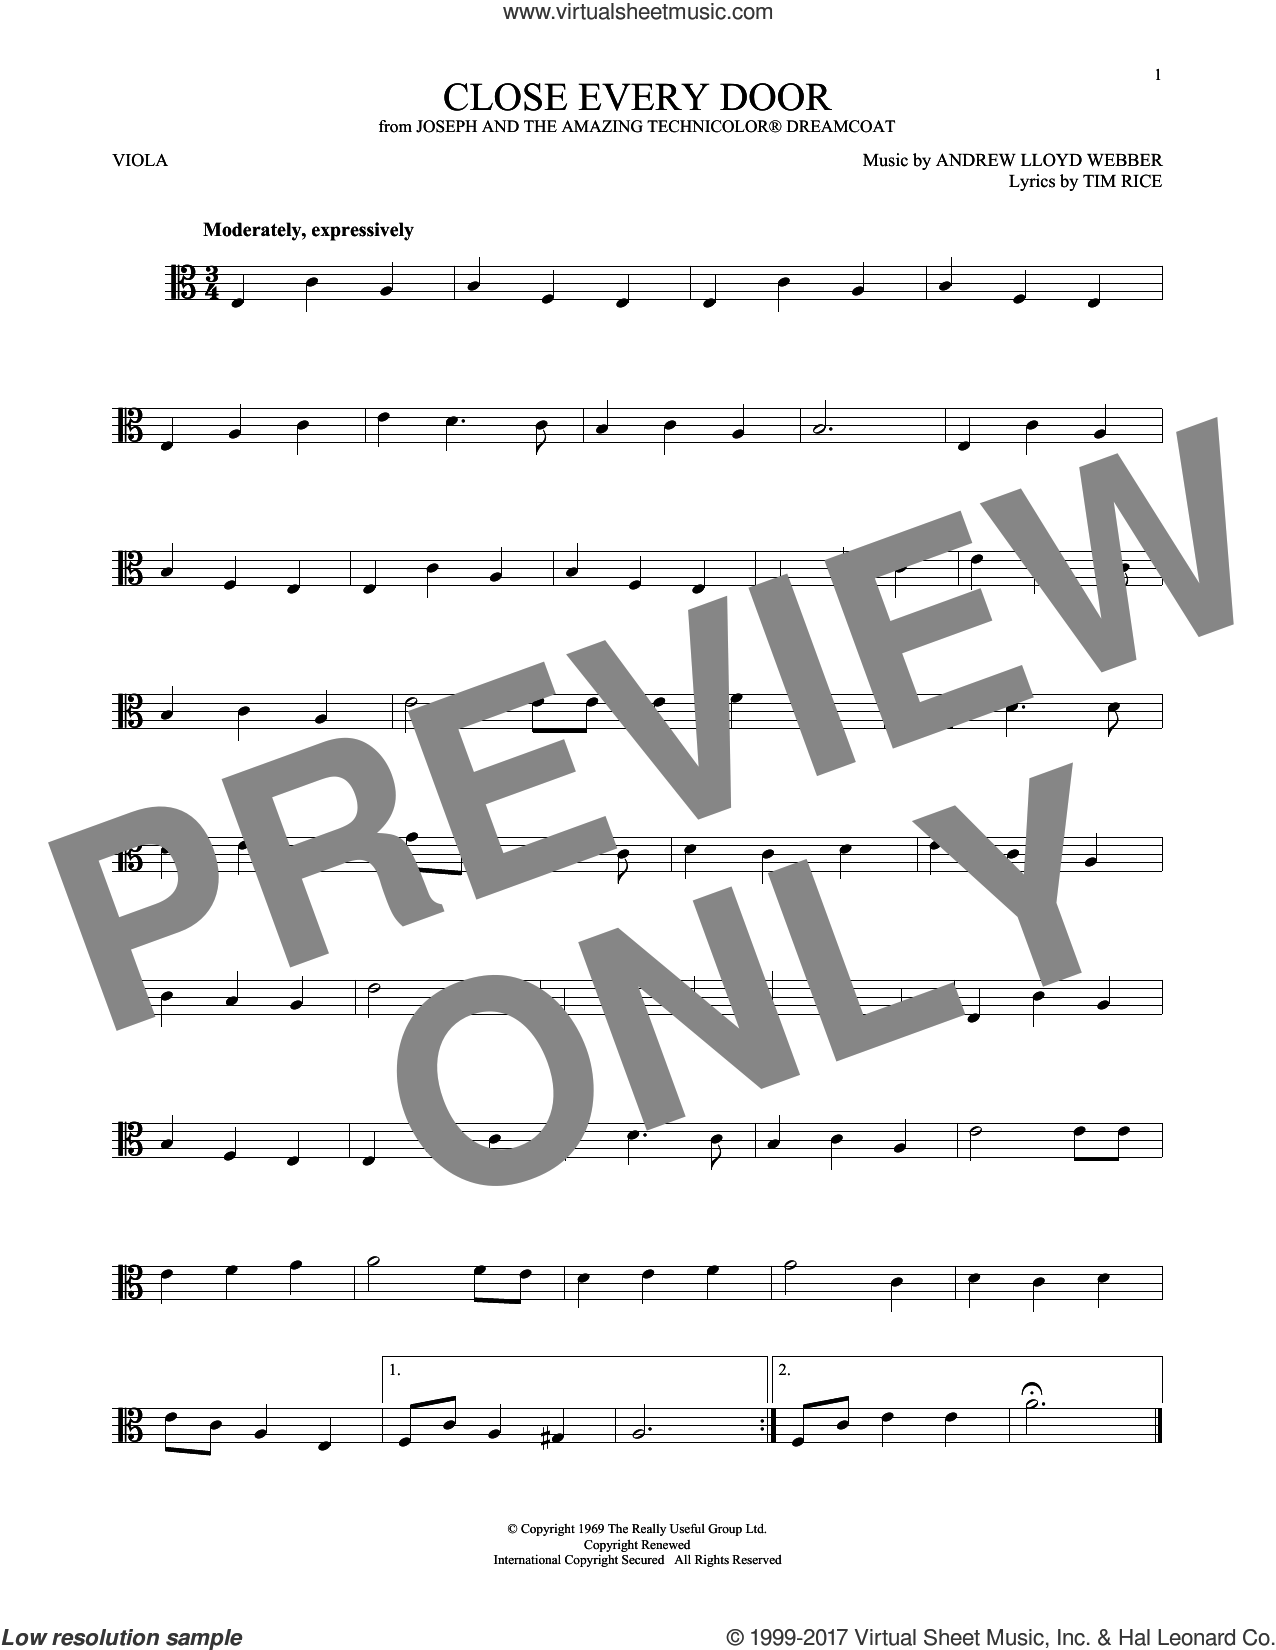 Close Every Door sheet music for viola solo by Andrew Lloyd Webber and Tim Rice, intermediate skill level